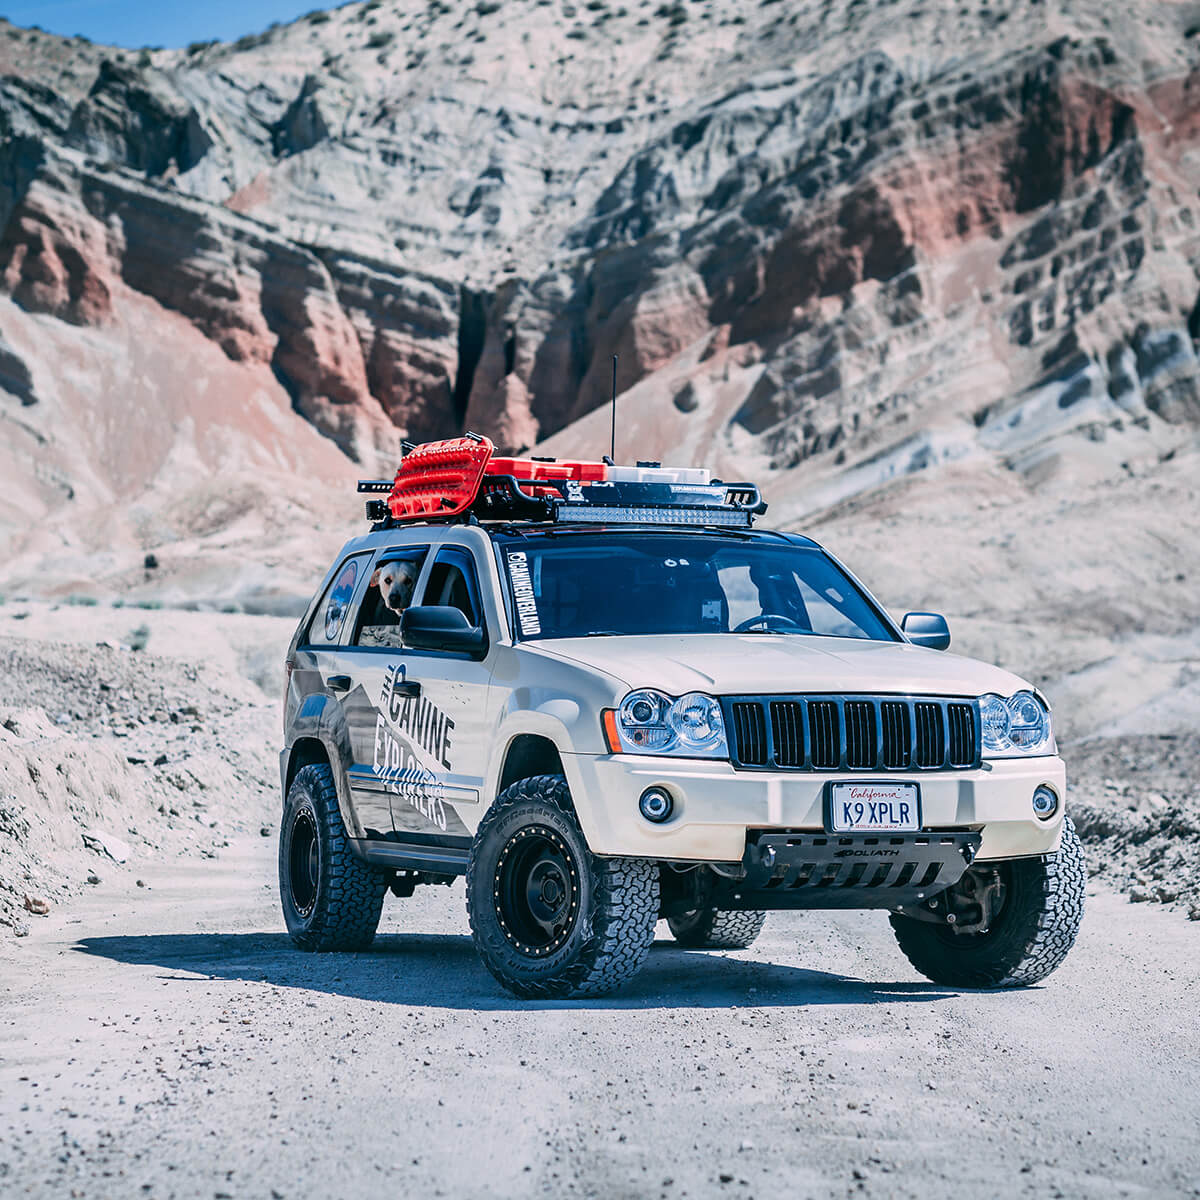 Lifted Jeep Grand Cherokee WK1 with a roof rack